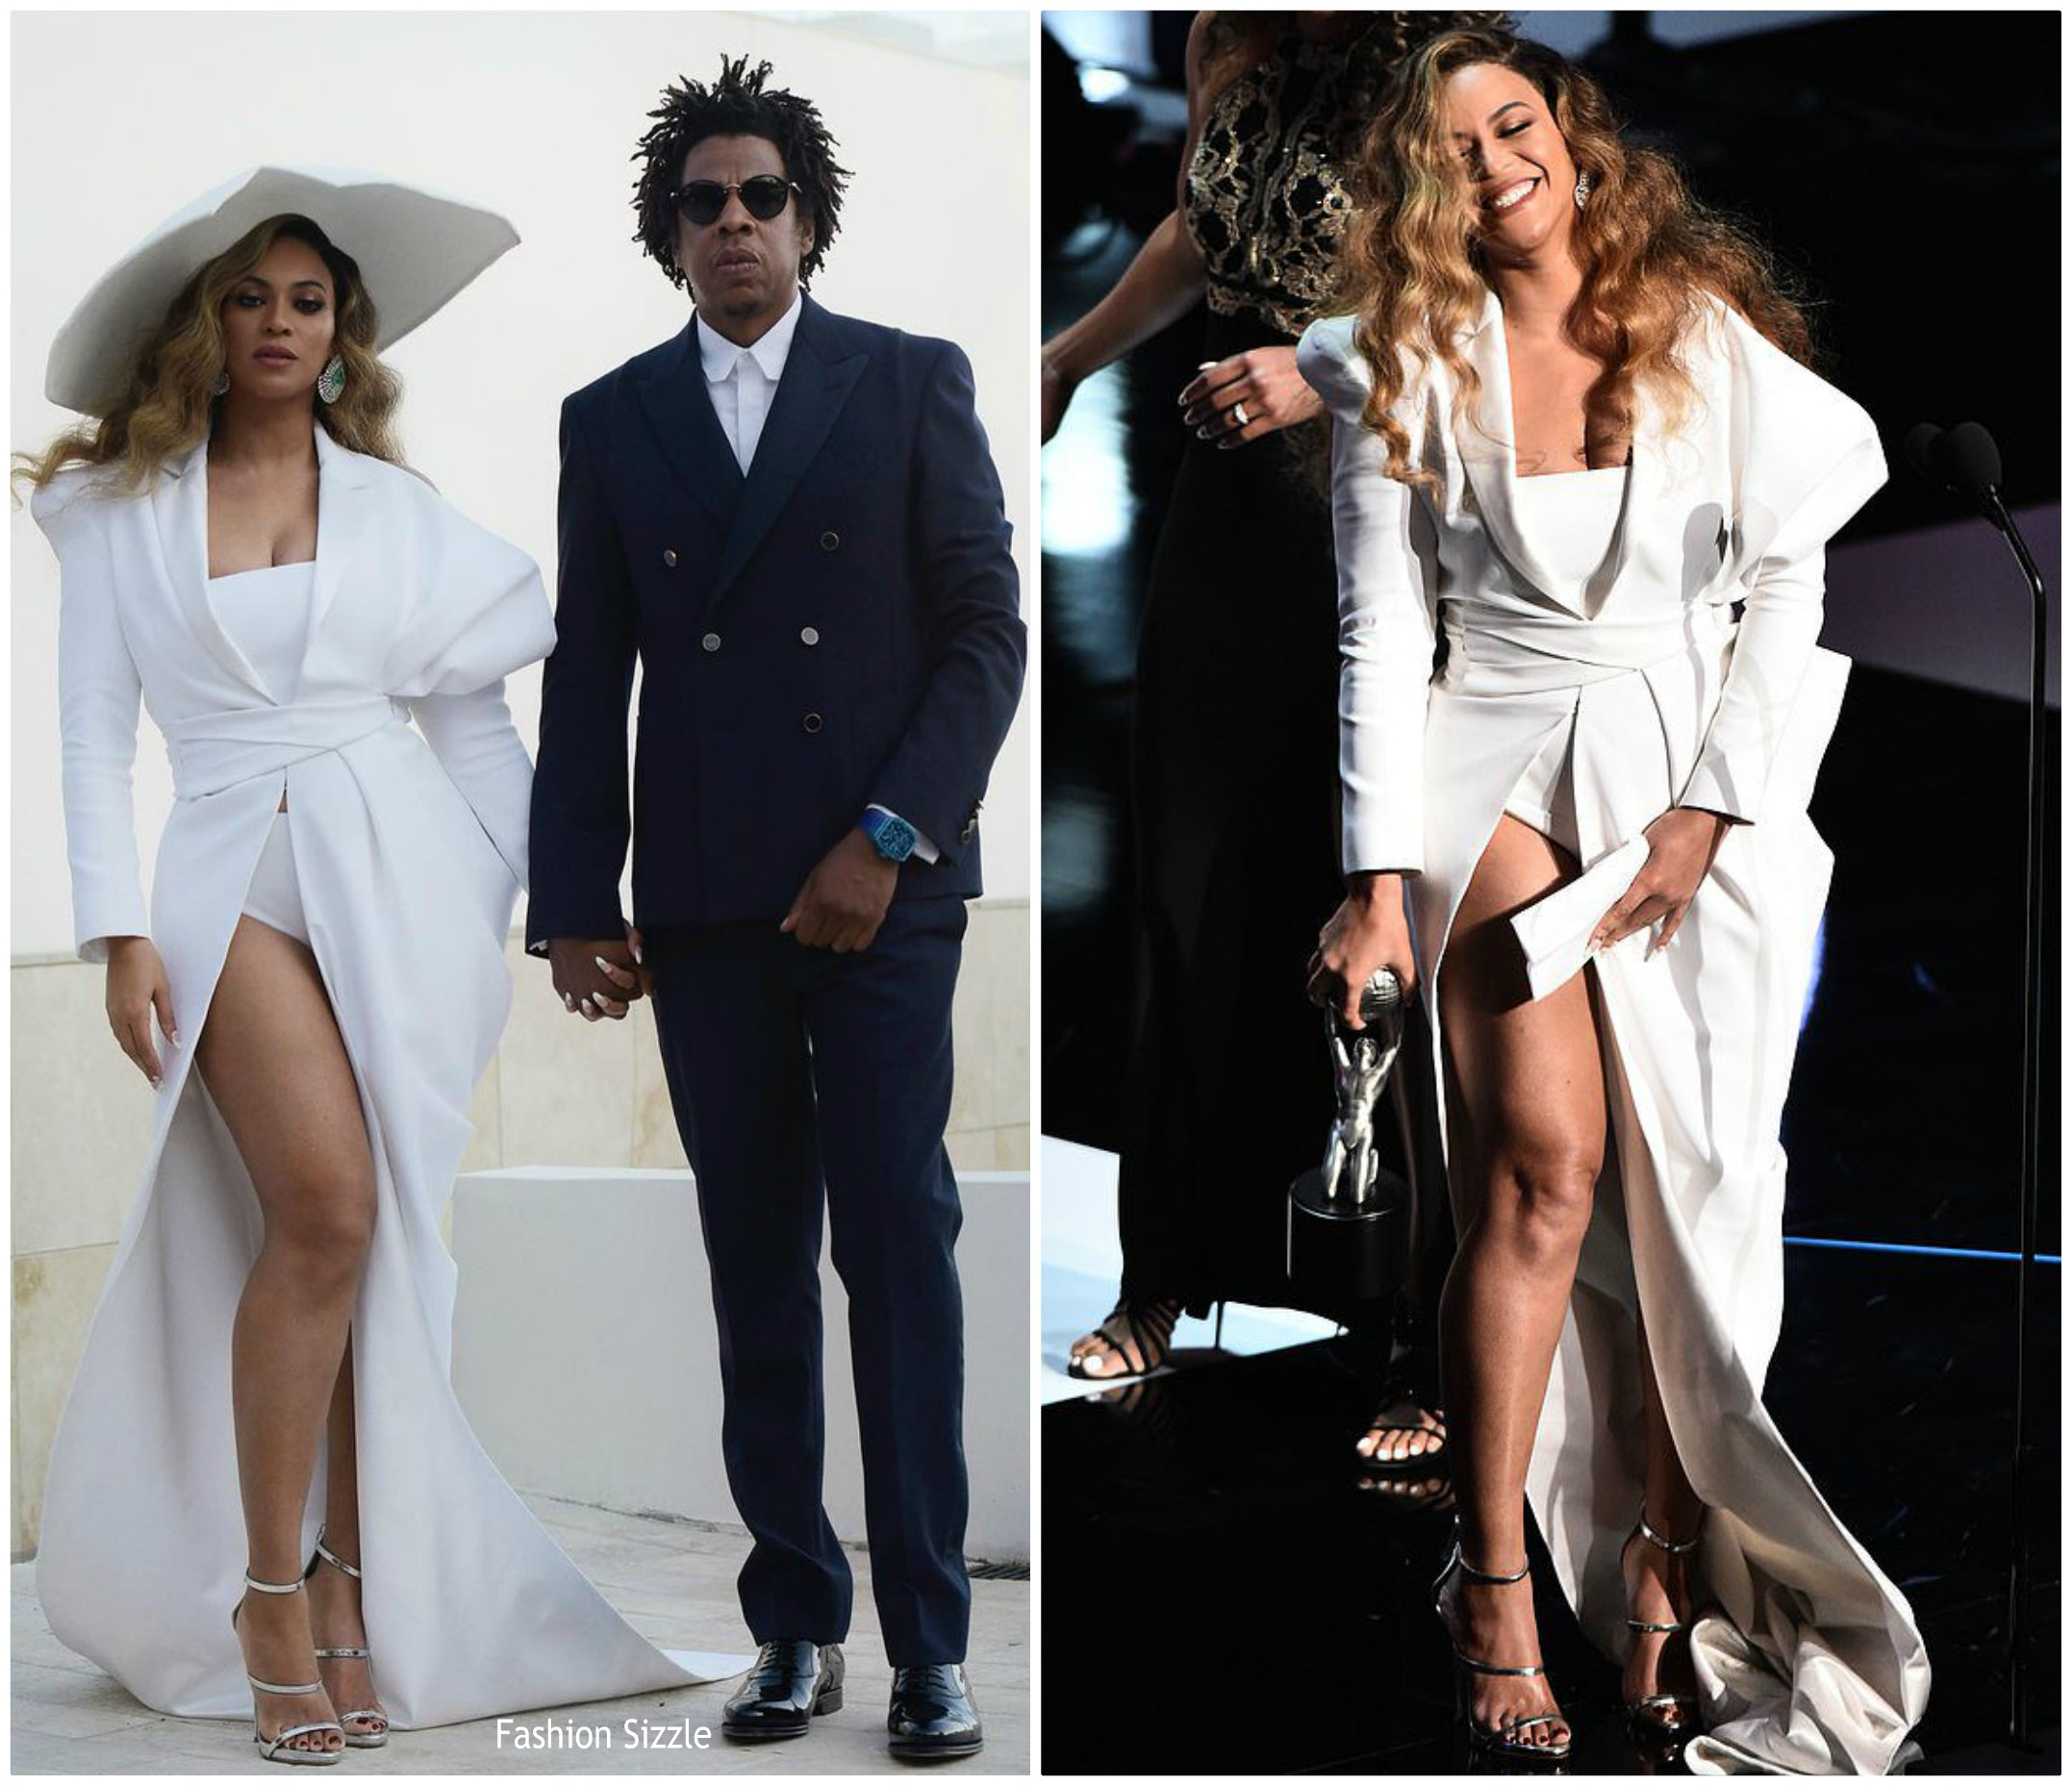 beyonce-knowles-in-balmain-accepting-her-entertainer-of-the-year-naacp-awards-2019